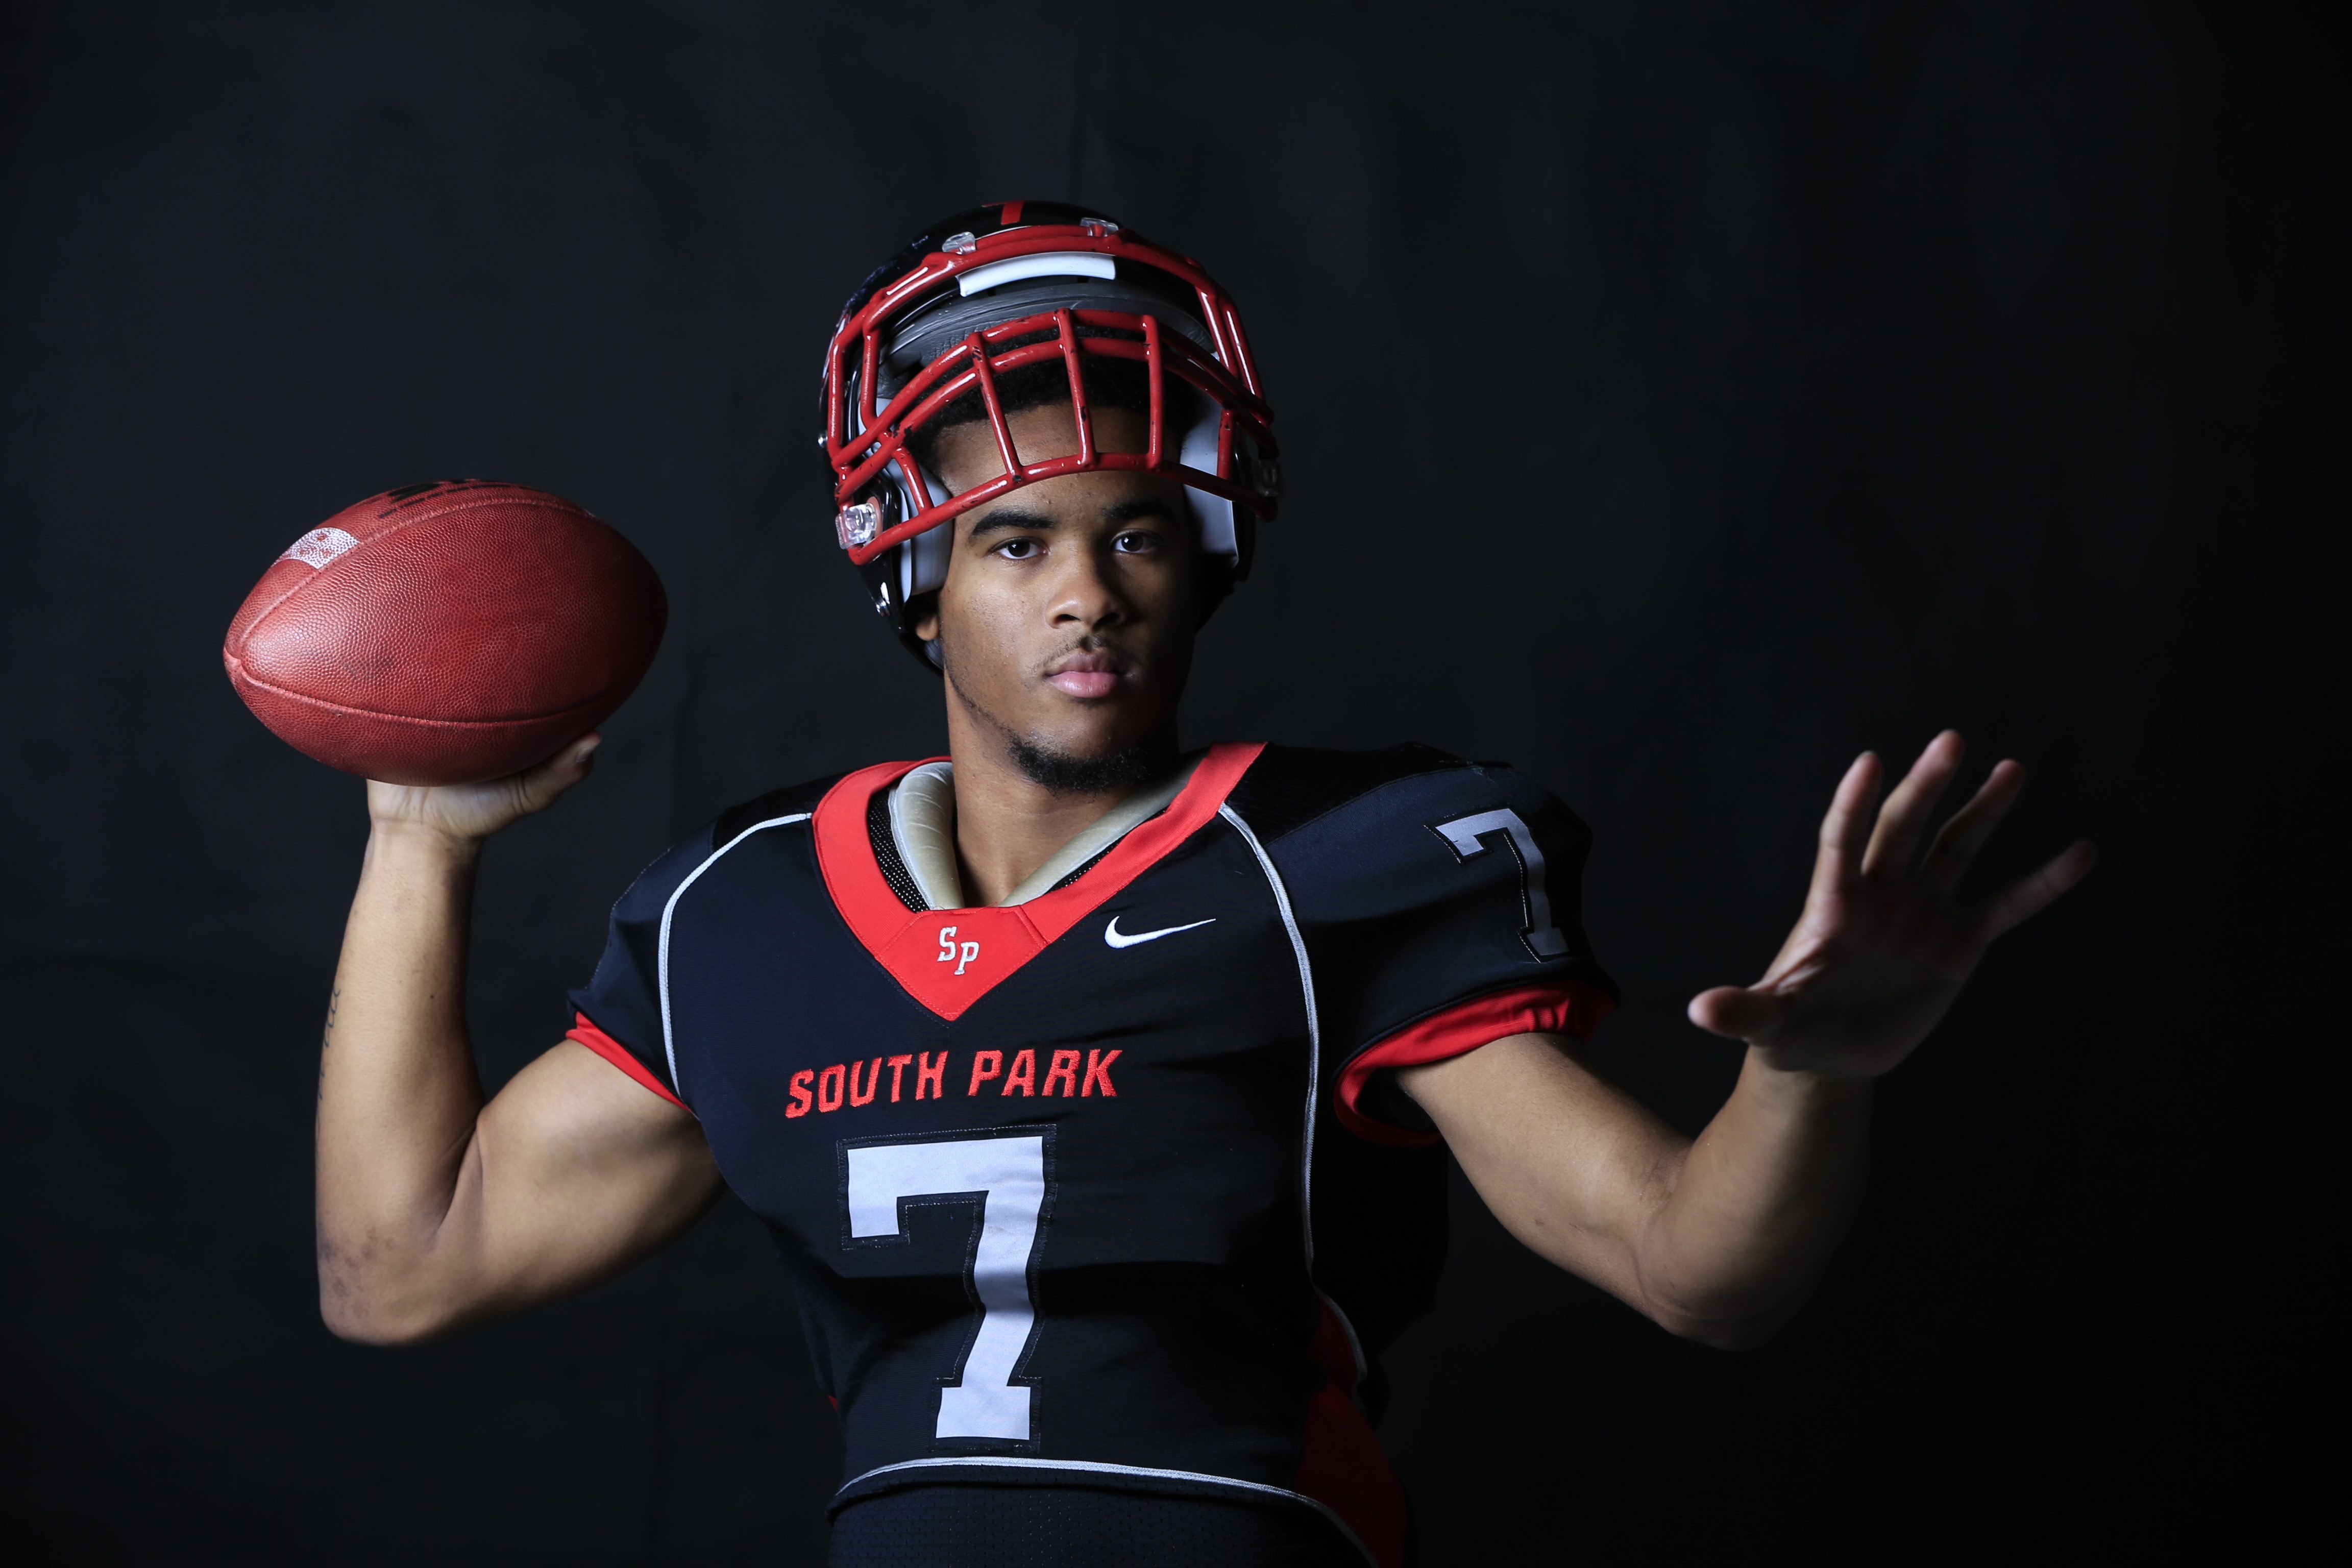 Tyree Brown, South Park high school ,Buffalo News All-WNY football first team  on Monday, Nov. 30, 2015. (Harry Scull Jr./Buffalo News)